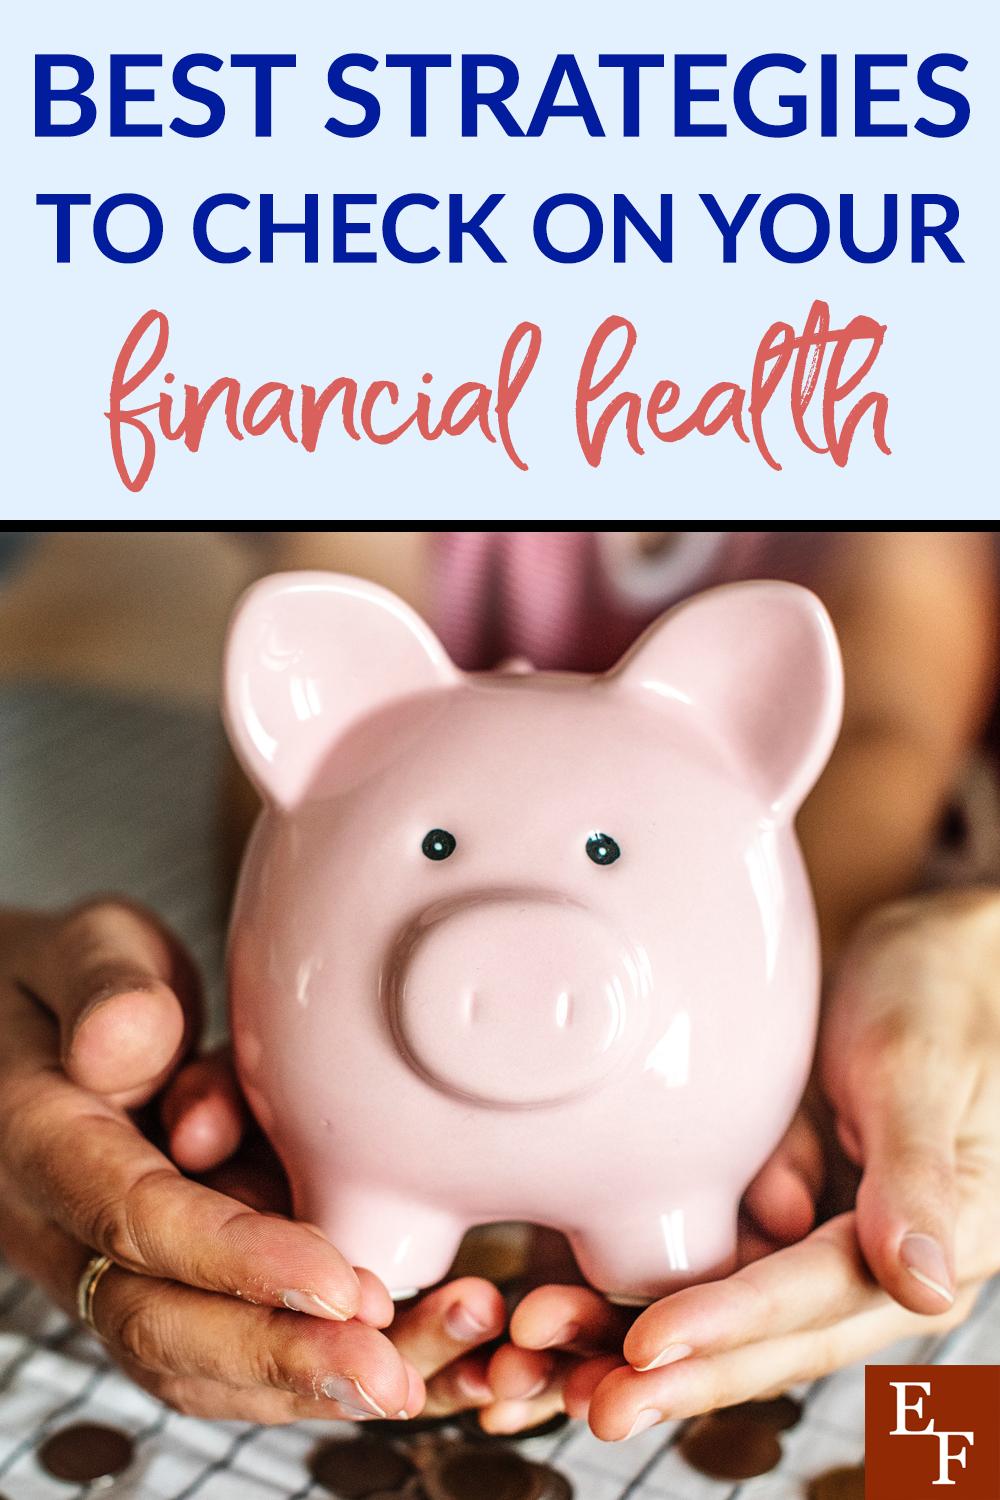 Regularly checking on your financial health is an important step to ensuring a good credit score. And here are some of the best ways to do just that!